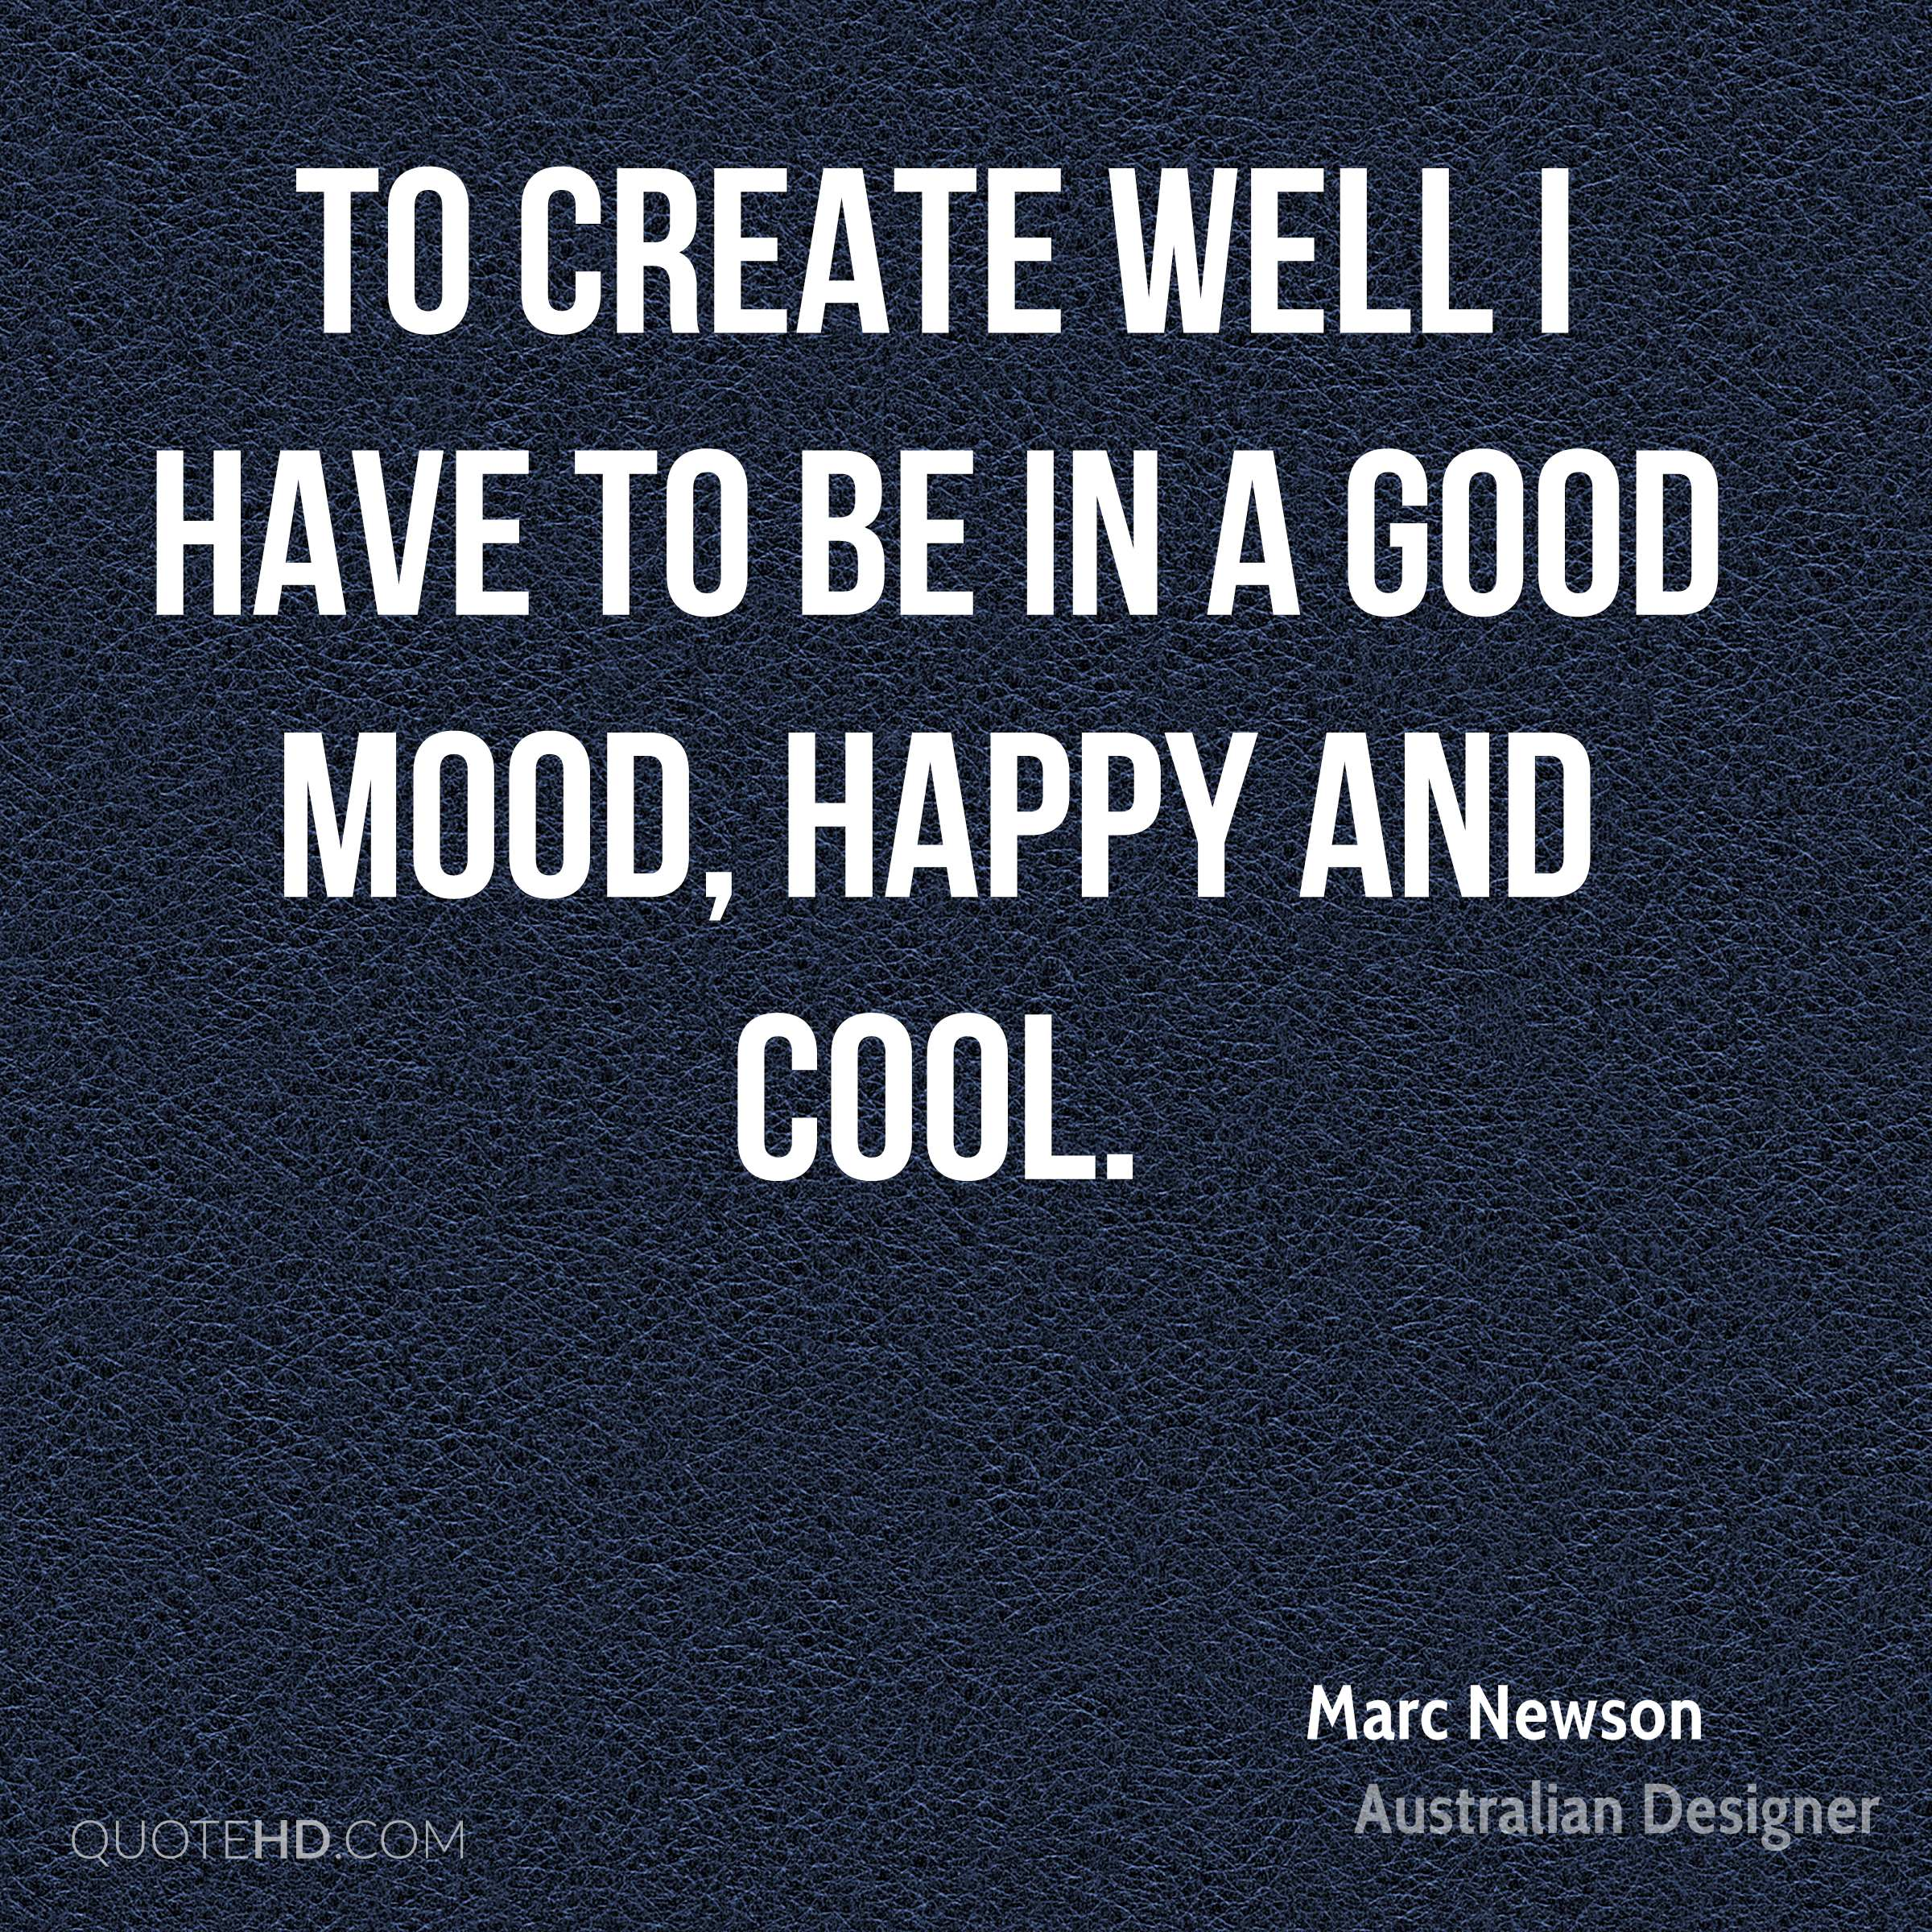 Marc Newson Quotes | QuoteHD